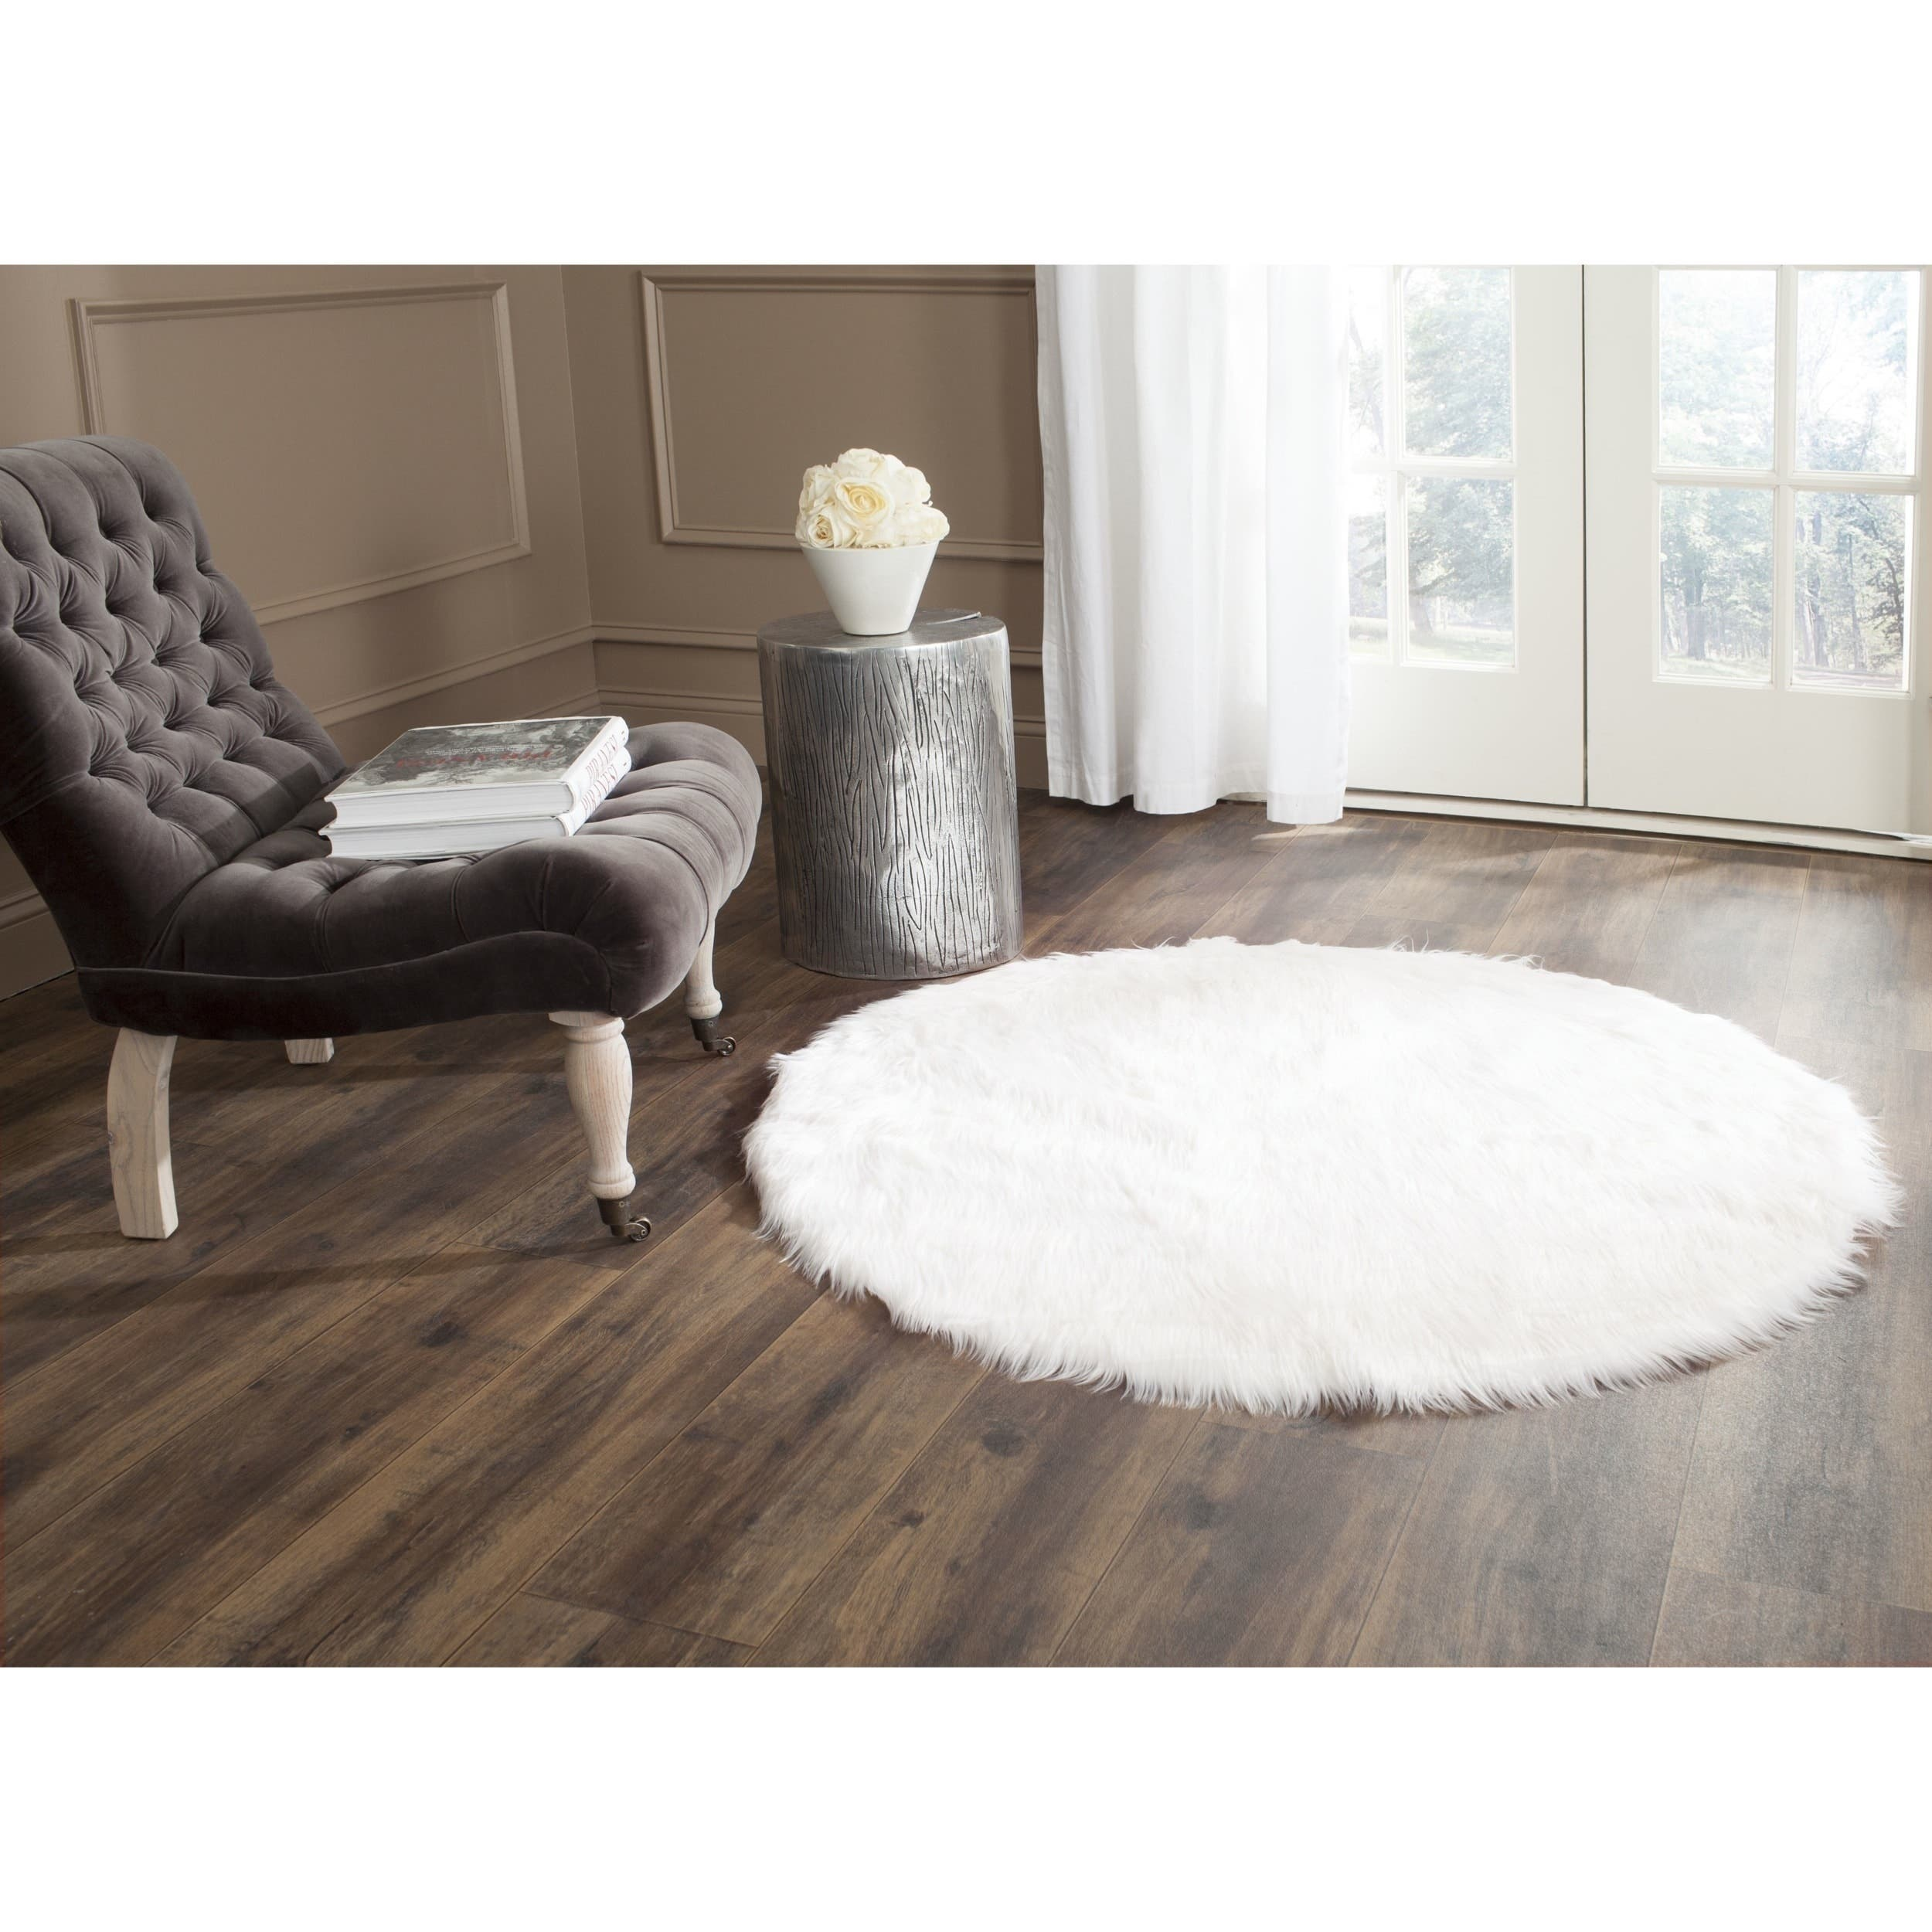 Sheepskin Rug Square: Buy Round, Oval & Square Area Rugs Online At Overstock.com